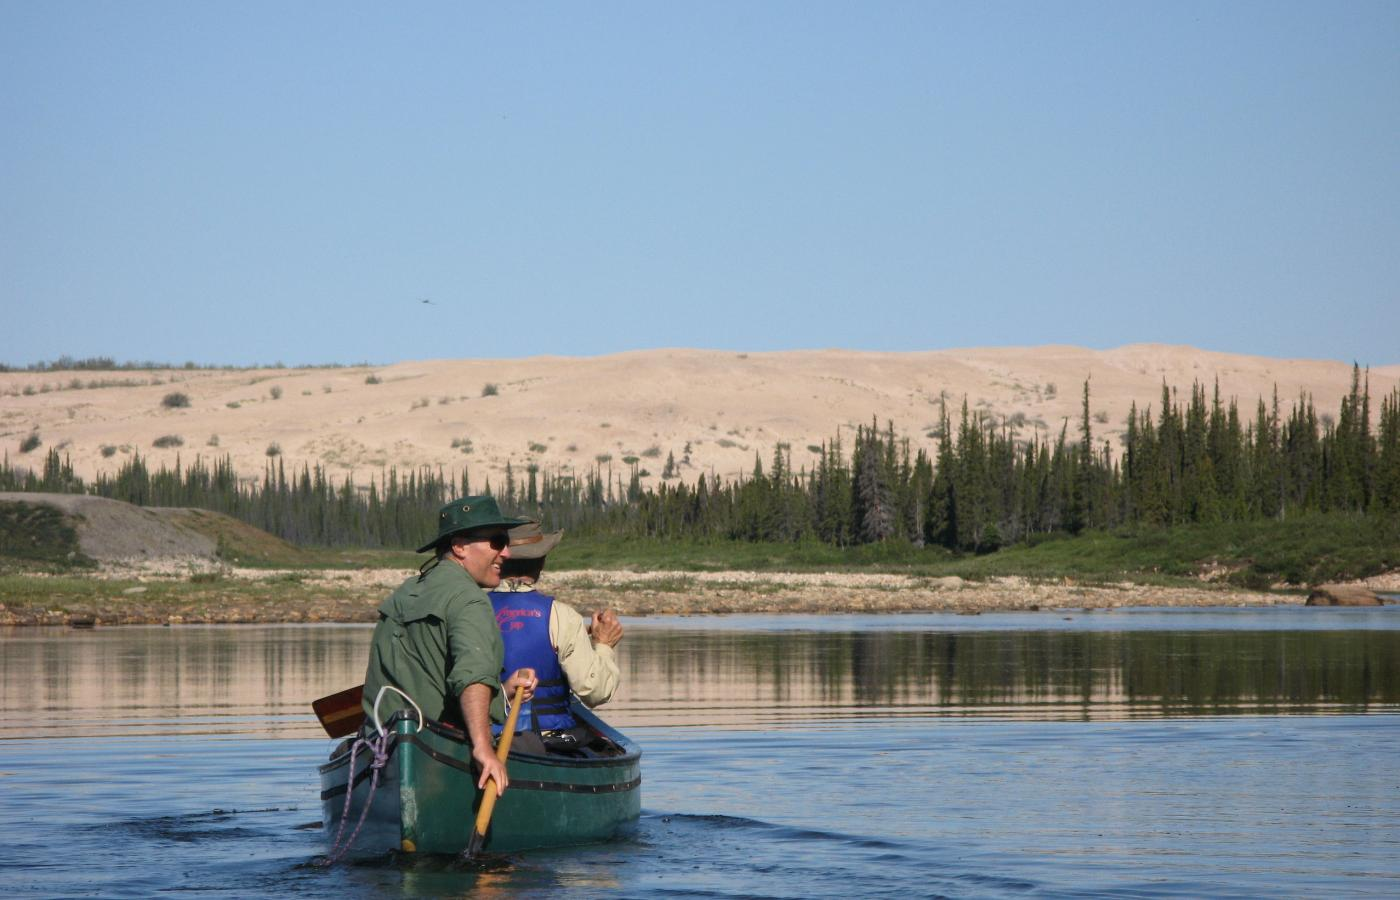 Paddling the Thelon, Coppermine, Dubawnt and other wild rivers of the Barrenlands in Canada's Northwest Territories